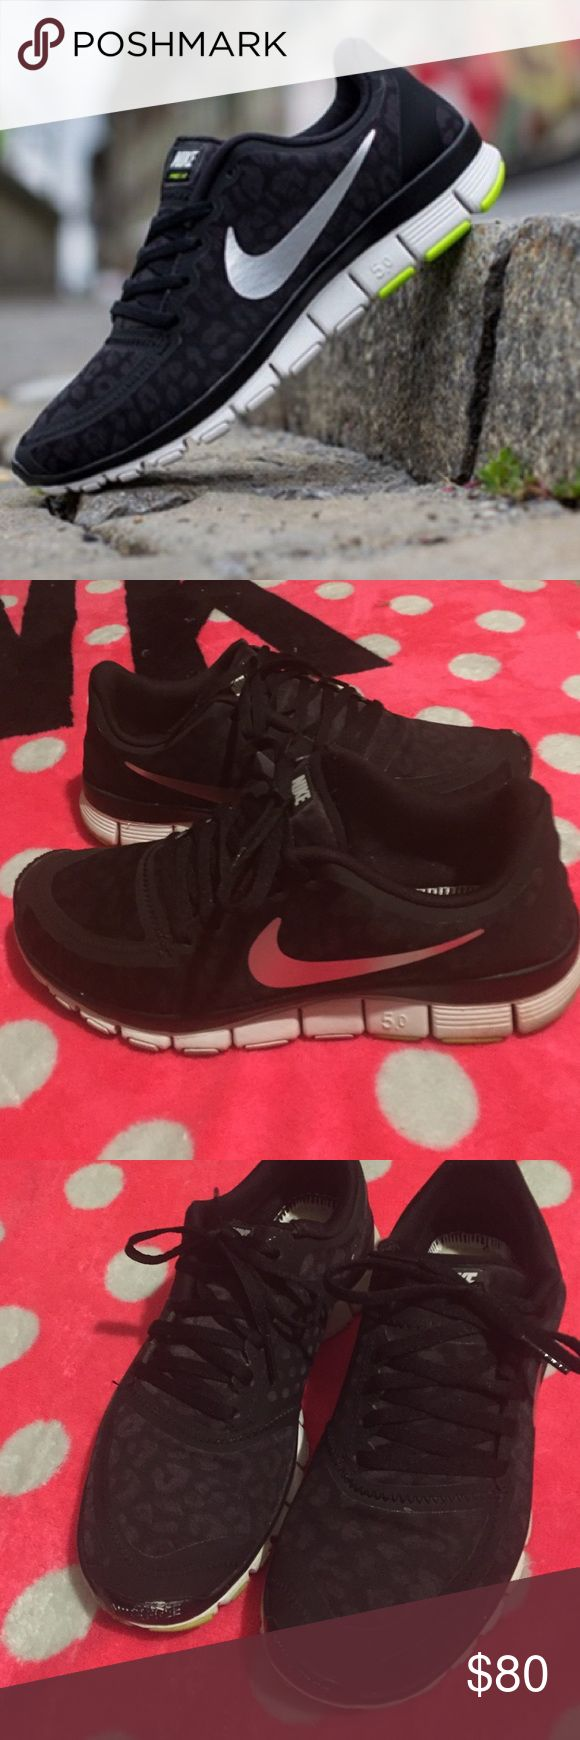 Nike Free 5.0 Black Leopard Nike Free 5.0 Black Leopard Shoes • Women's size 8 • Gently worn and in excellent condition • Hard to find in this color! 💕❤️ Nike Shoes